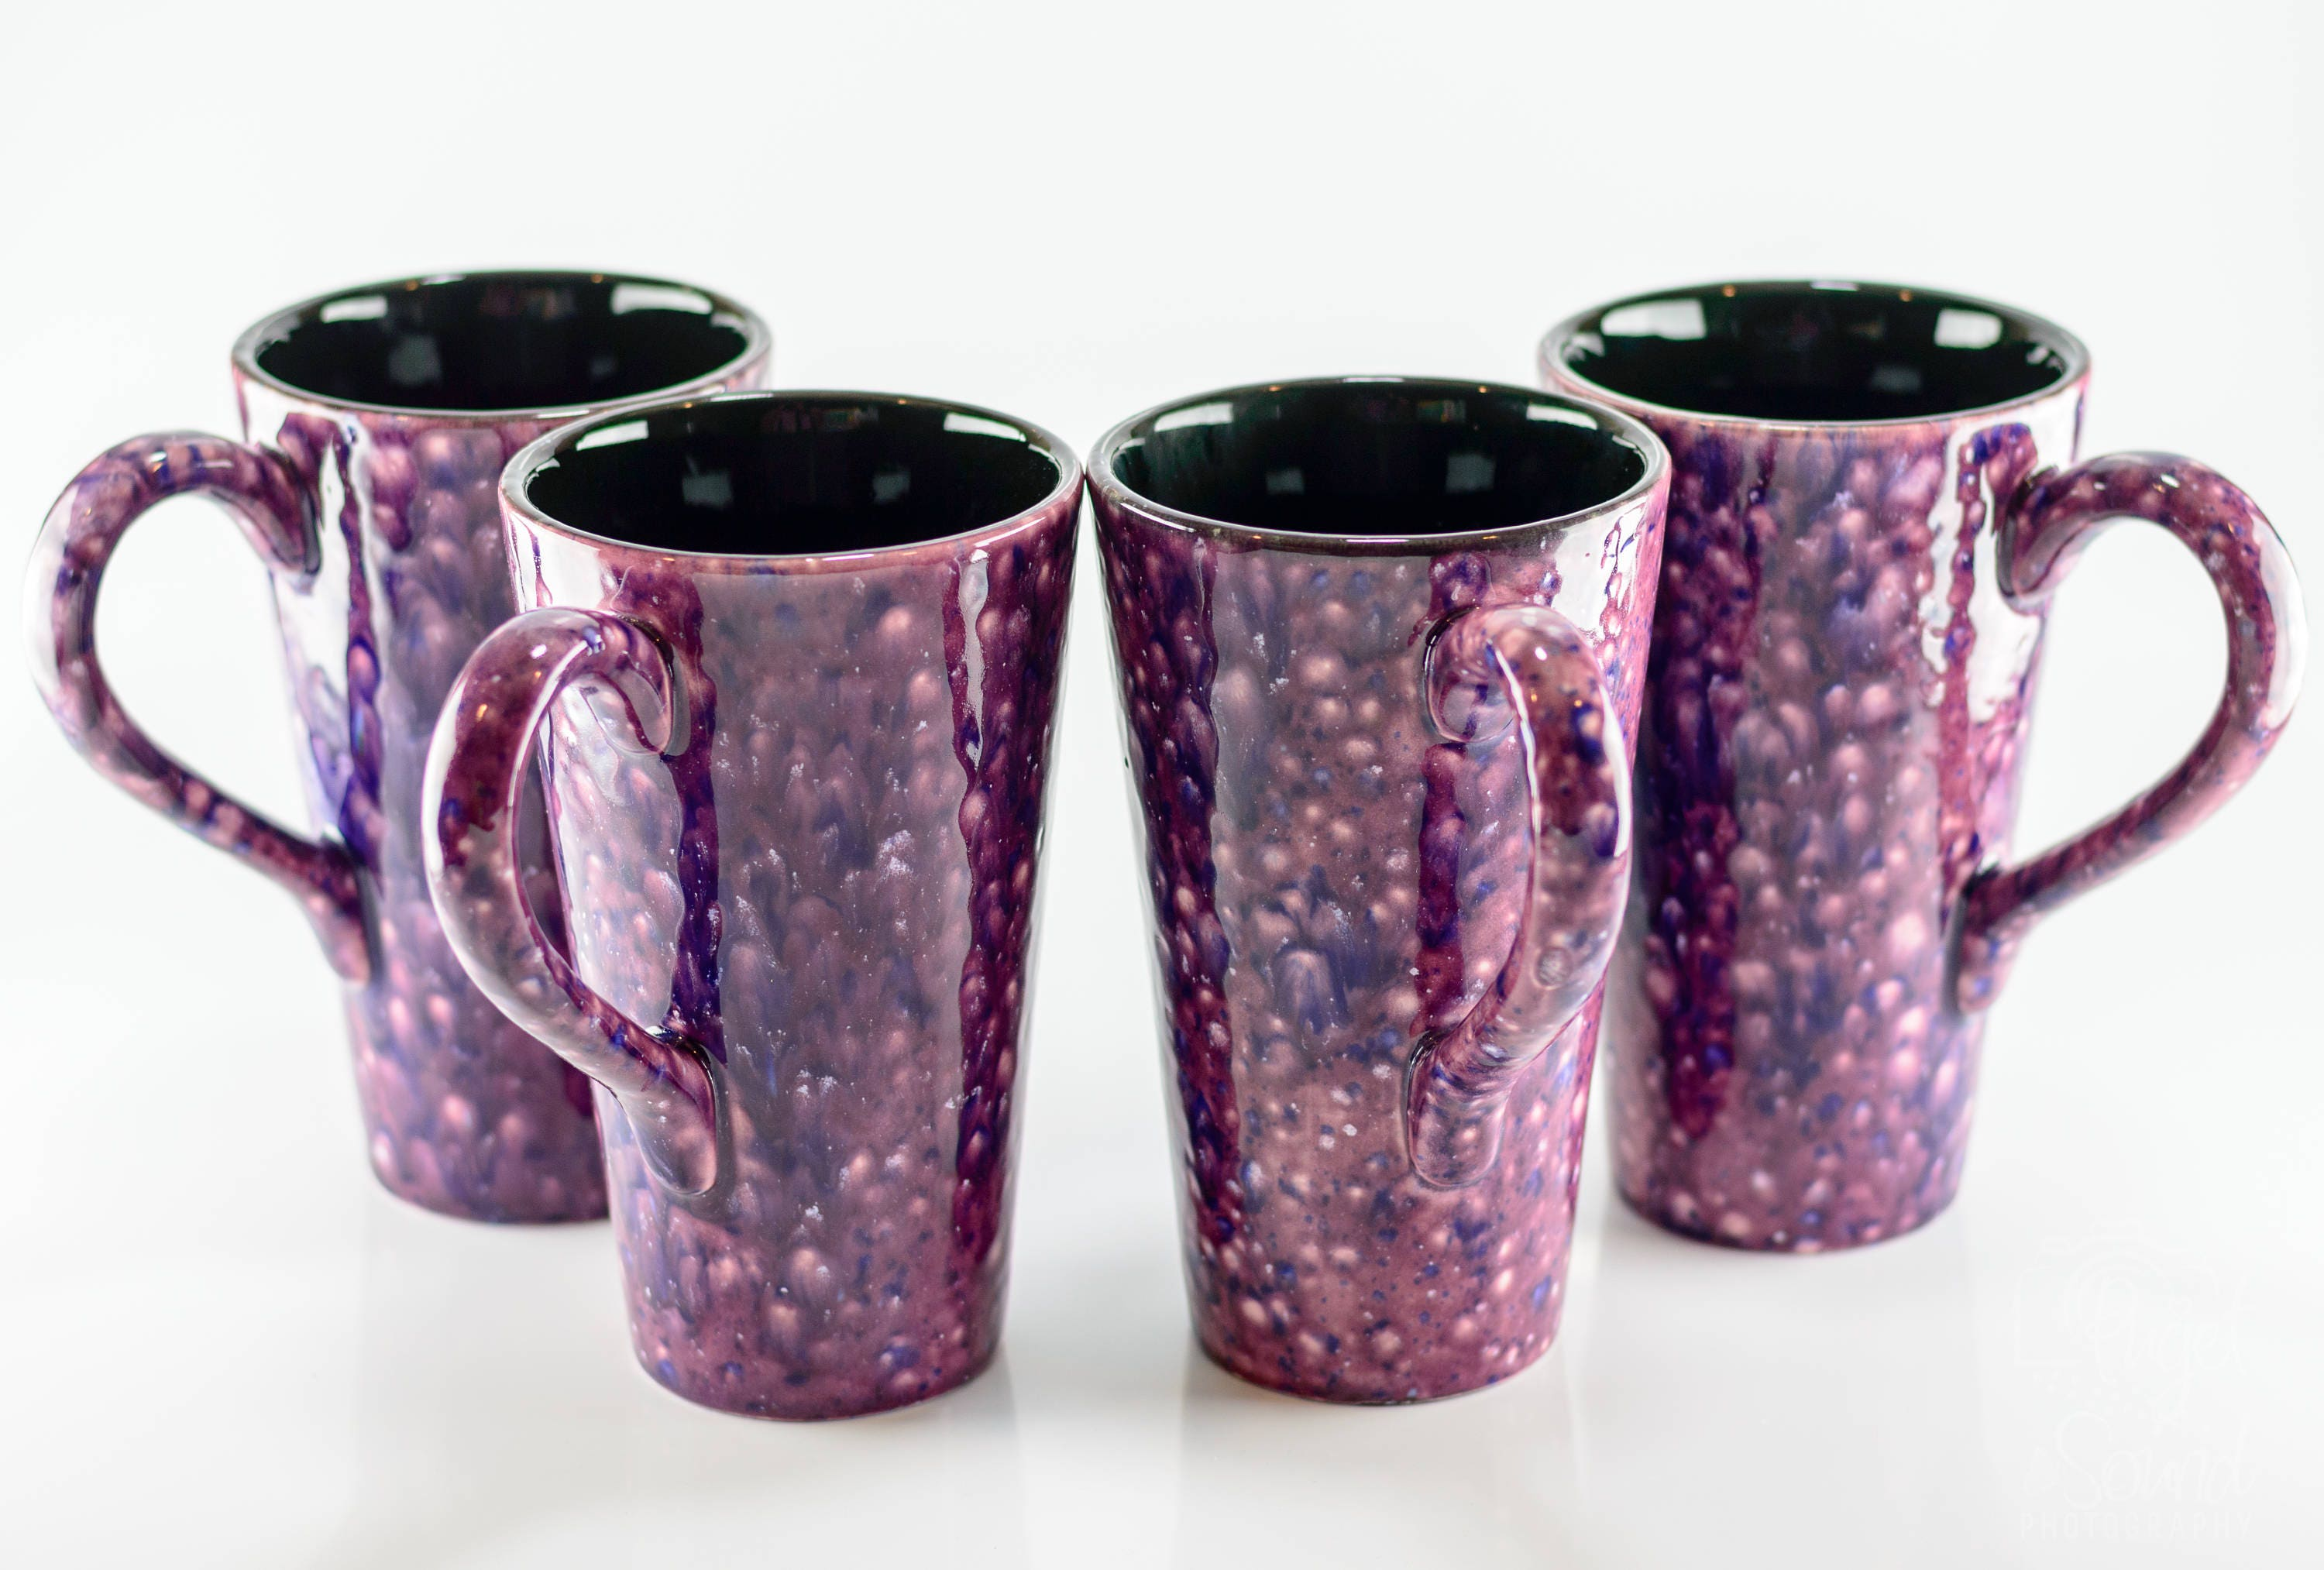 & Mugs - 16 oz - Purple Cosmos - Bursting Crystal Design - Hand Painted